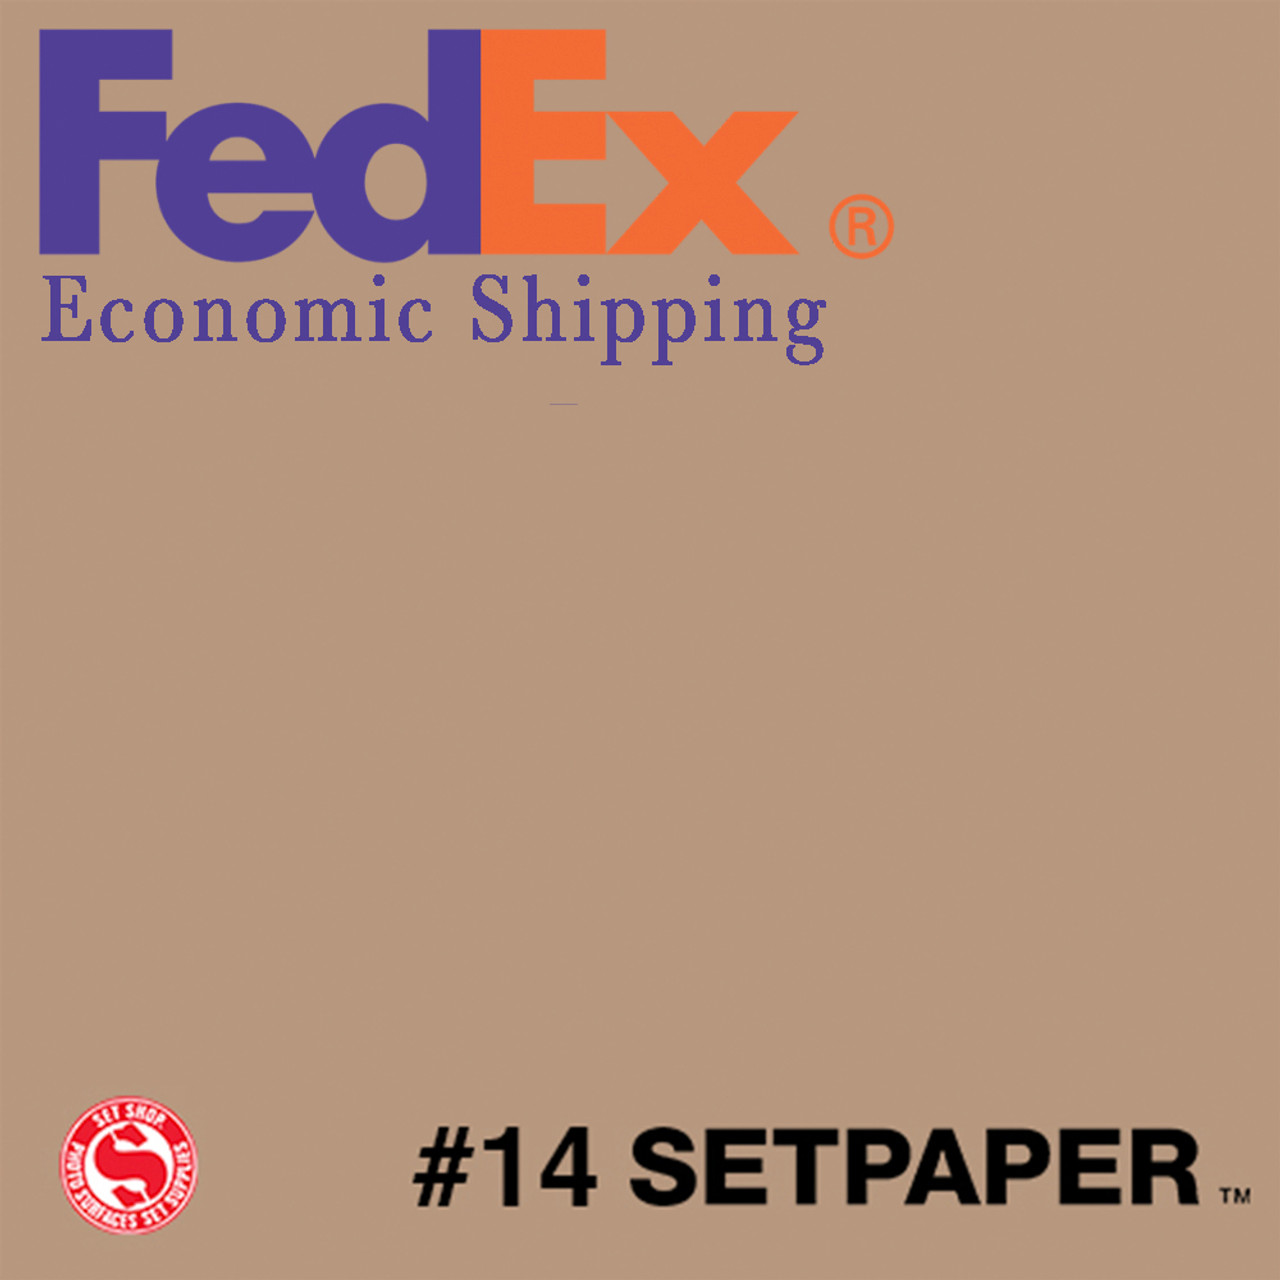 "(ECONOMIC SHIPPING) SETPAPER - NATURAL 48"" x 36' (1.3 x 11m)"